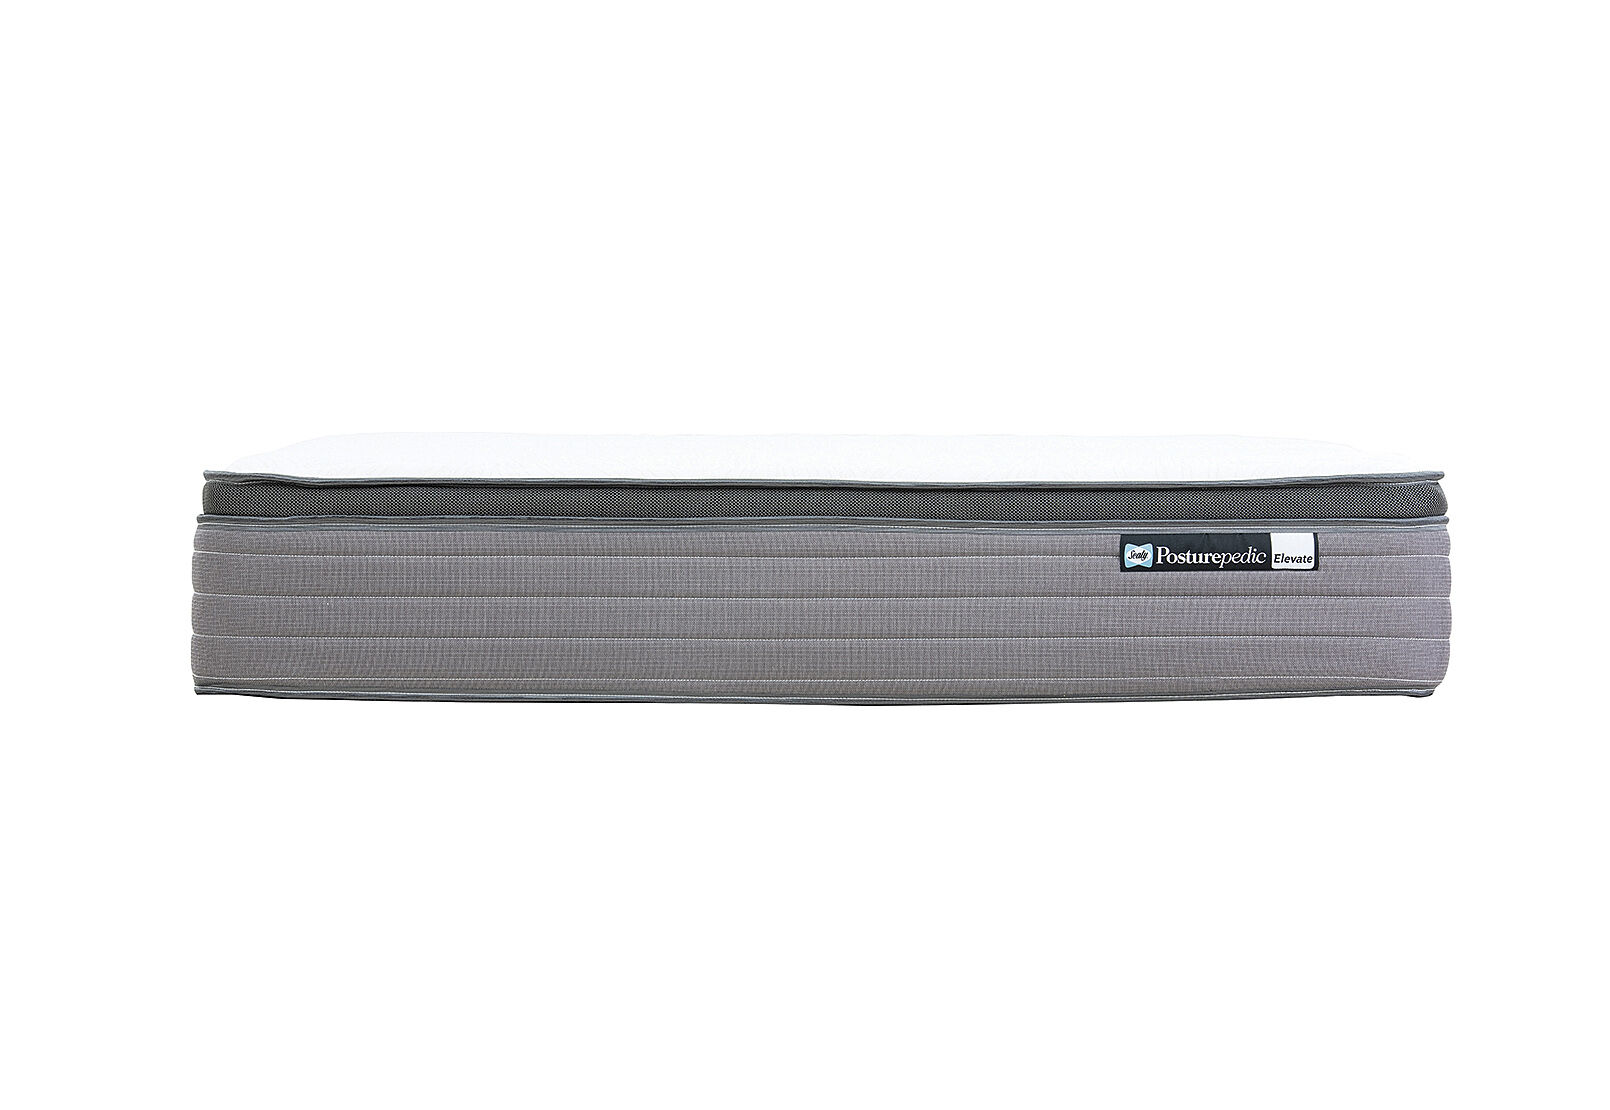 P/PEDIC ELEVATE SUPREME FLEX MEDIUM